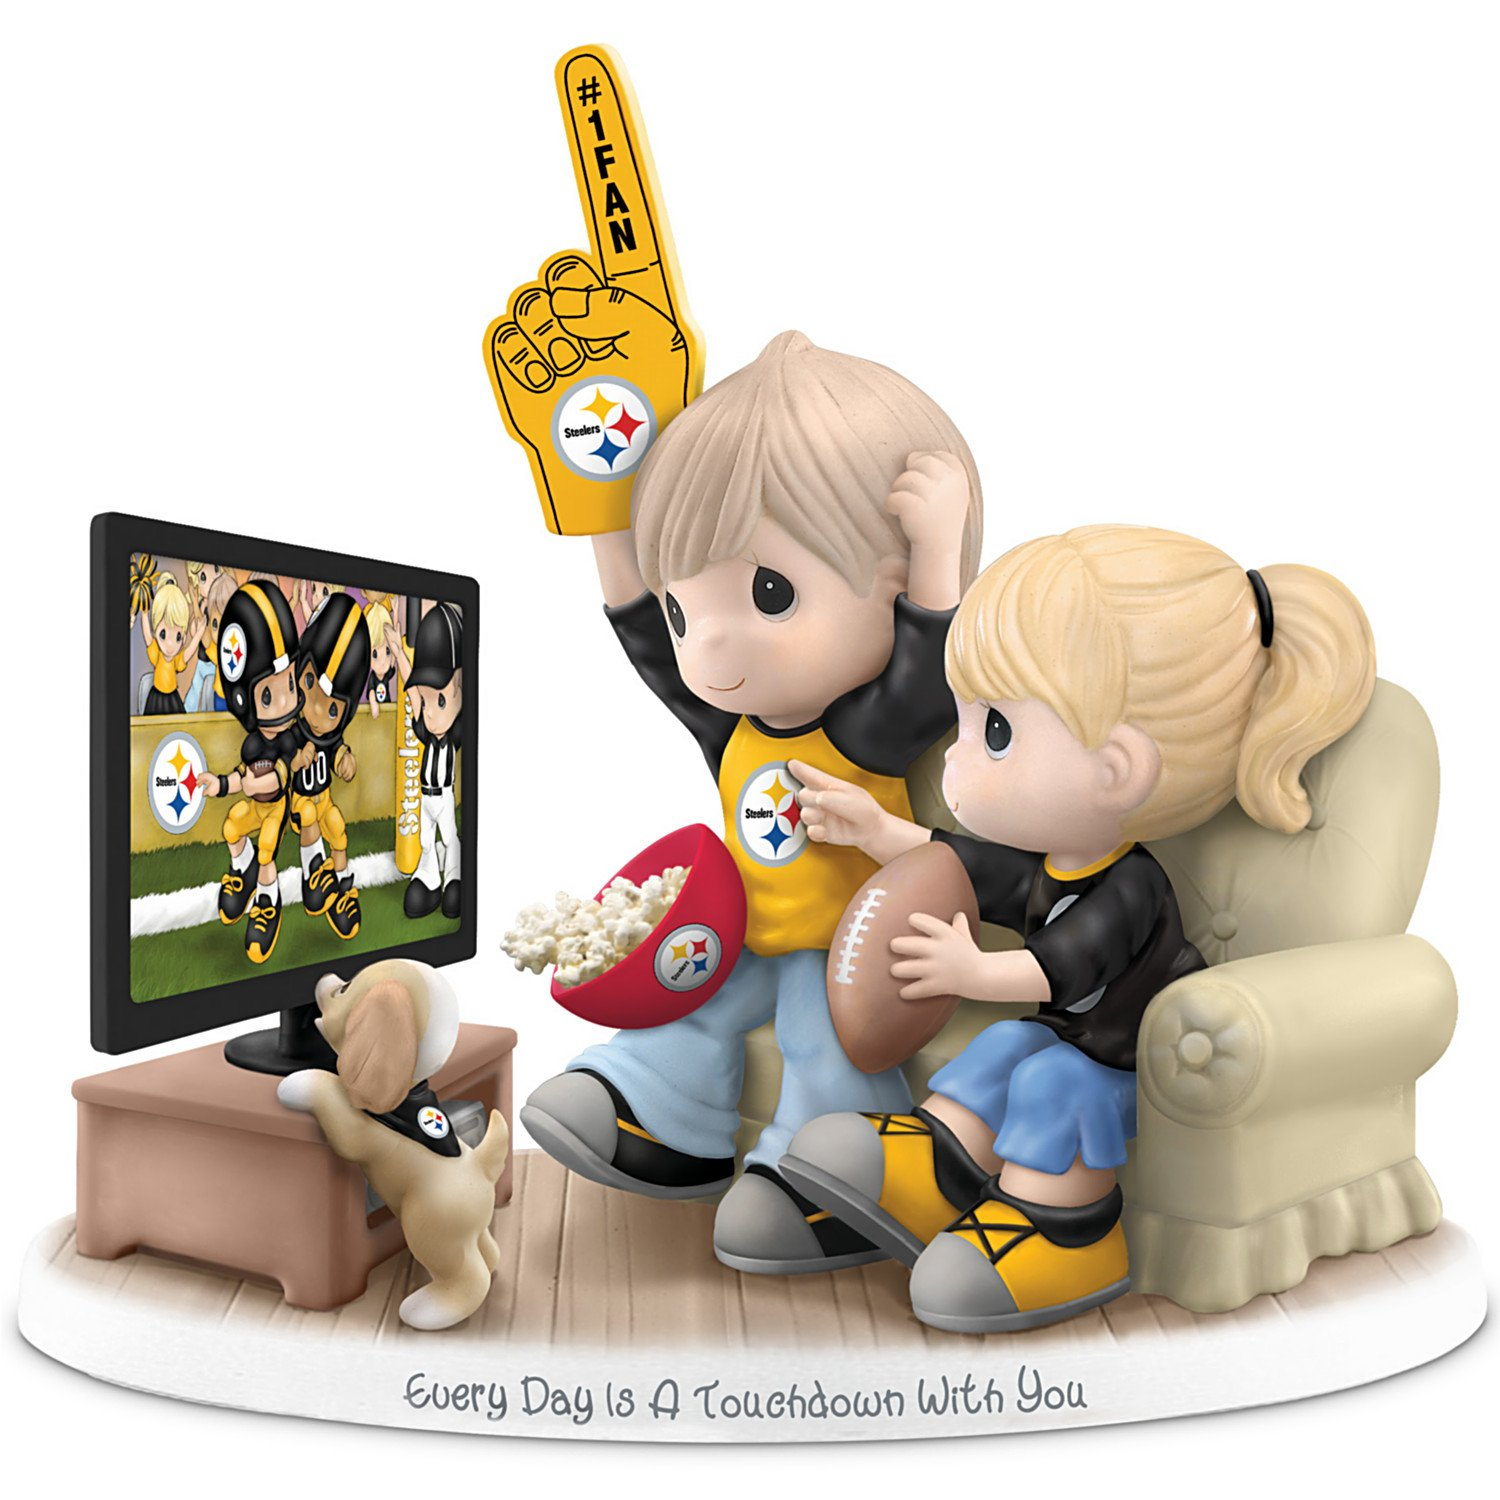 Figurine: Precious Moments Every Day Is A Touchdown With You Steelers Figurine by The Hamilton Collection